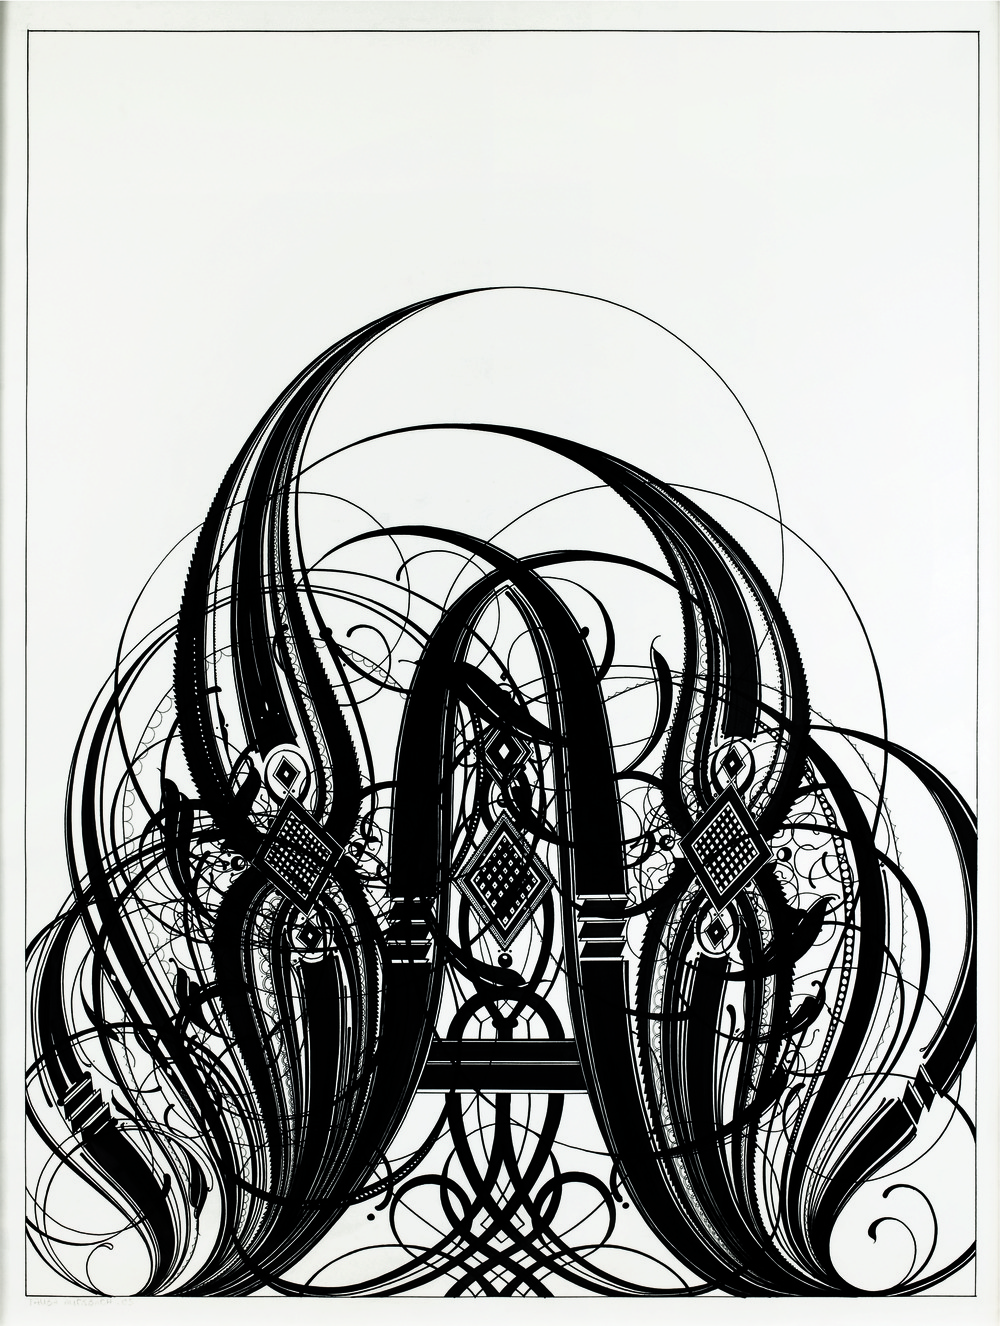 Tauba Auerbach, A, 2005 Ink on paper 50 x 38 inches  127 x 96.5 cm